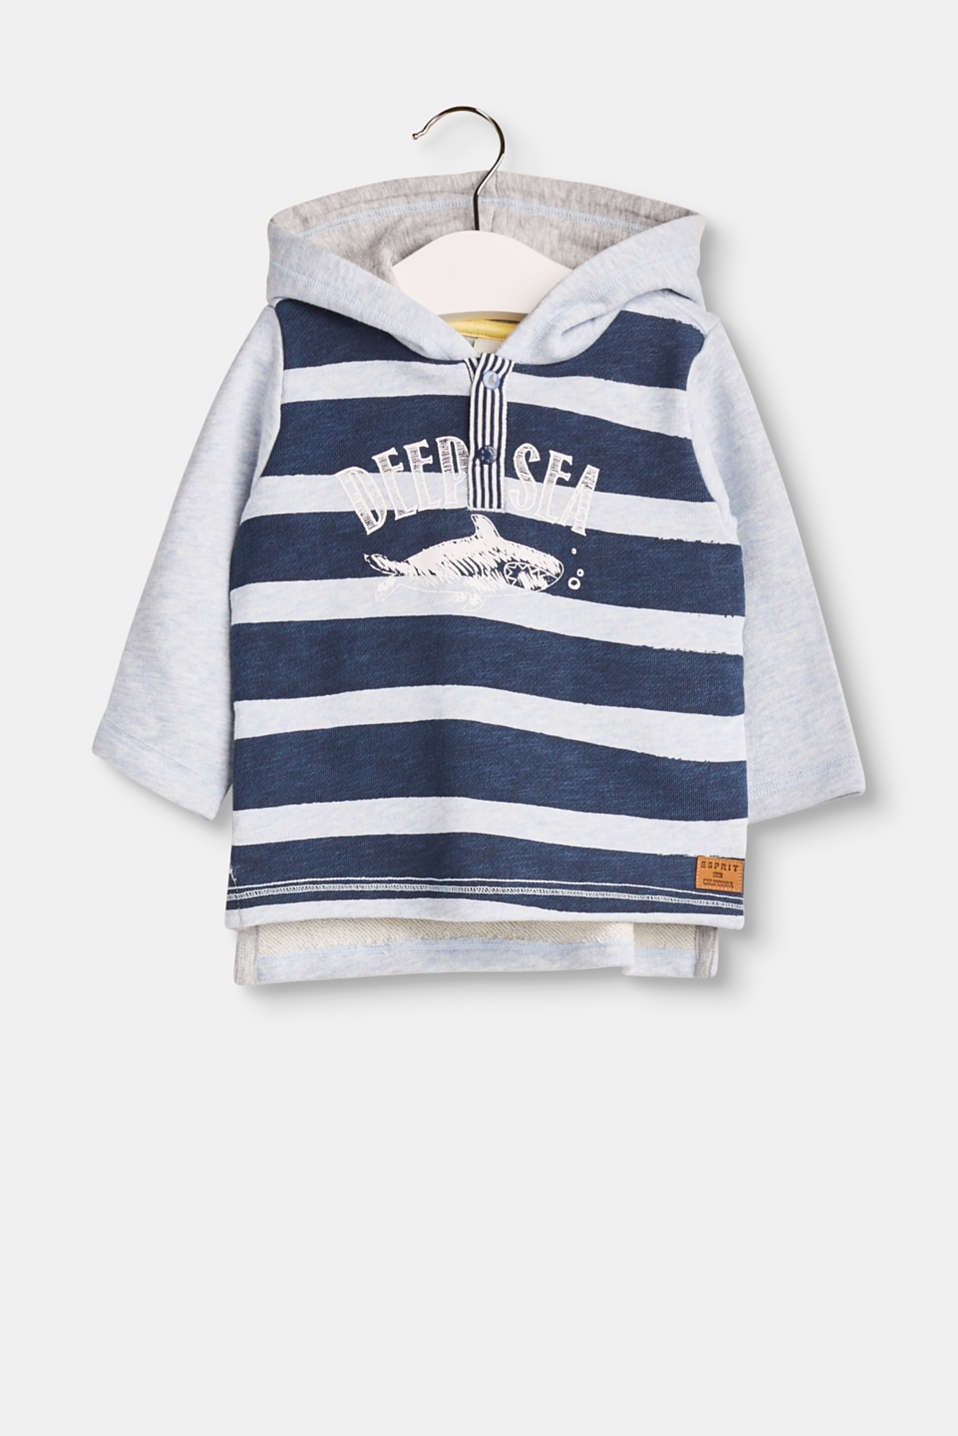 Deep Sea! This pure cotton hoodie is embellished with nautical stripes and a cool whale print.